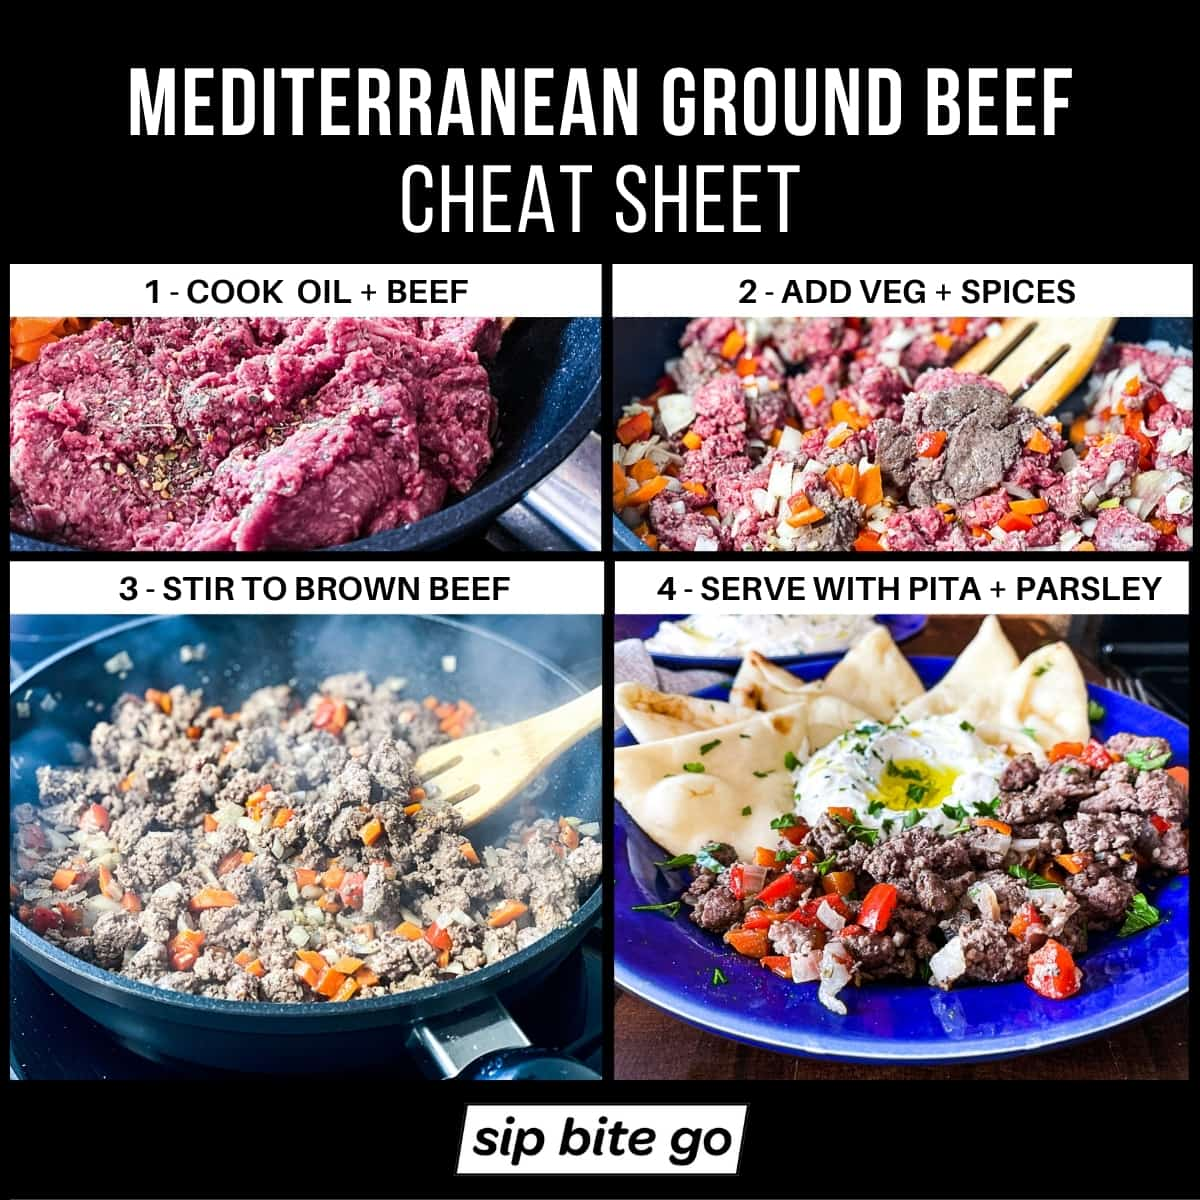 Infographic charts with steps on how to make Mediterranean ground beef.